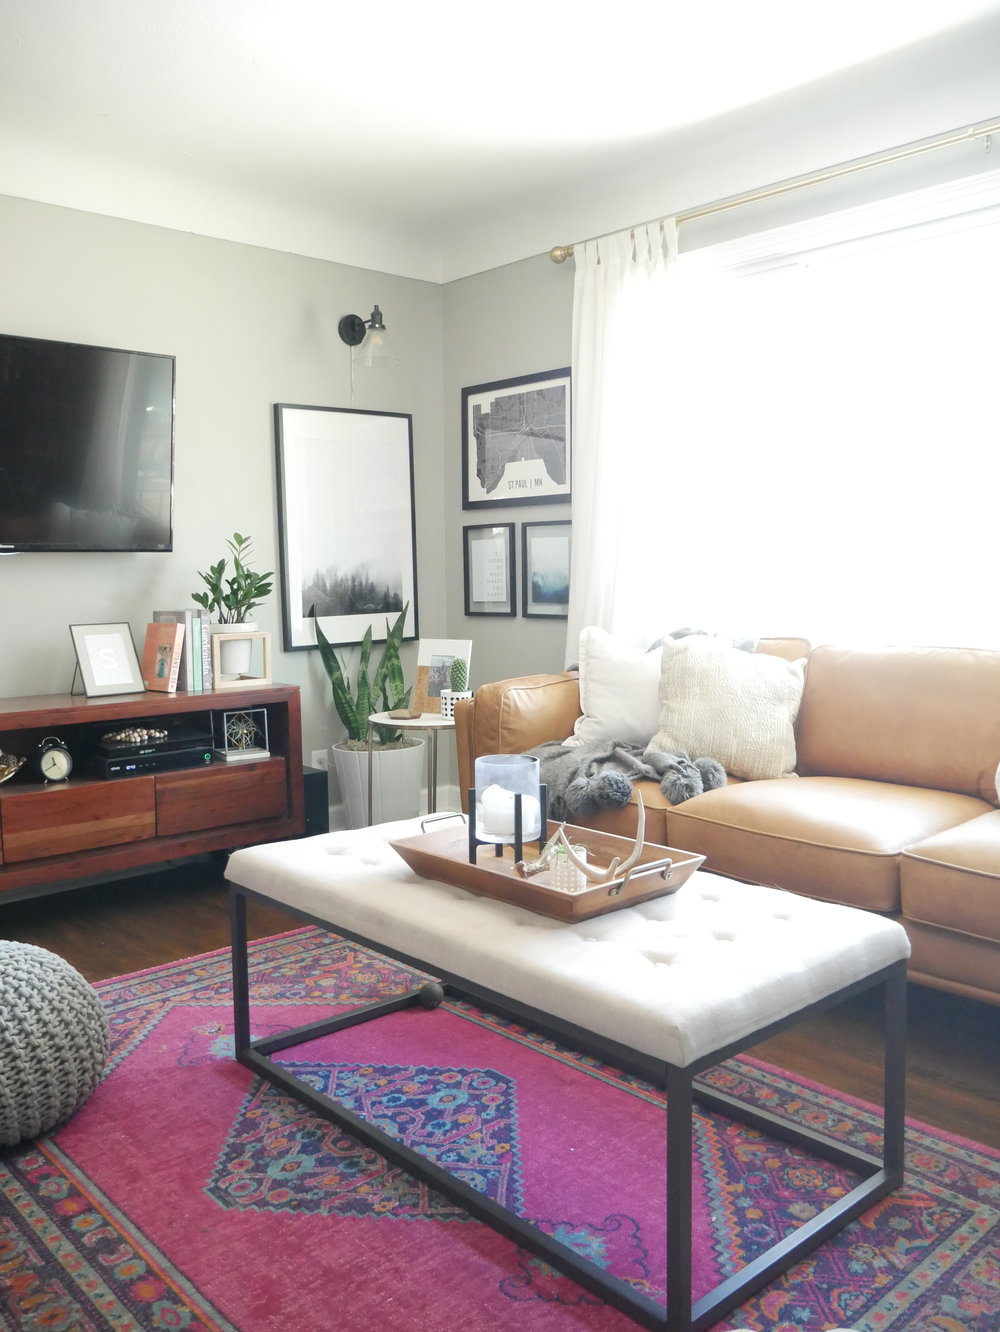 The Latest Living Room Update: Our New Article Sofa — Our Fifties ...